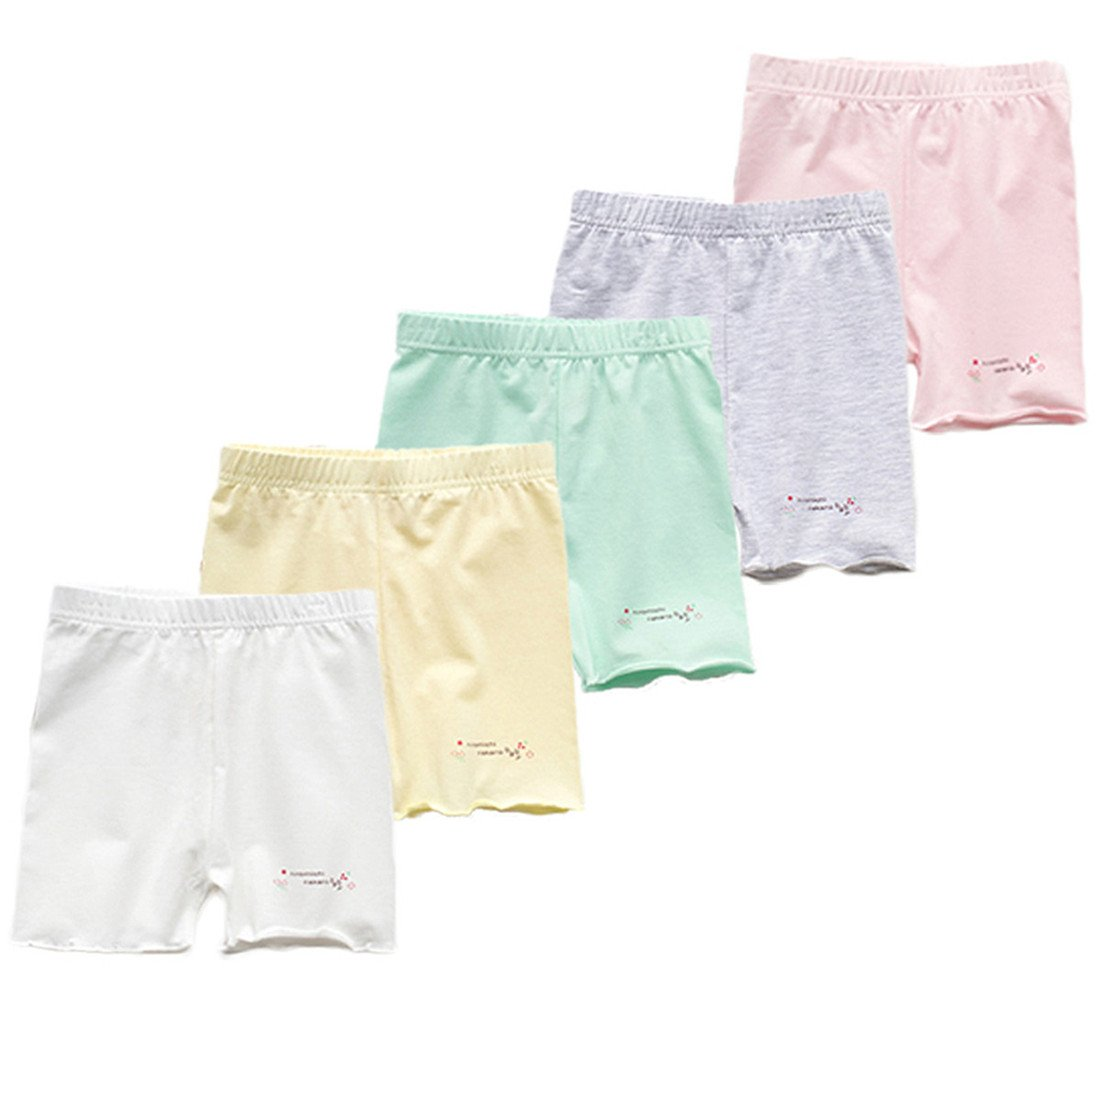 FAIRYRAIN Little Girls Kids 5 Pcs Candy Color Gymnastics Slim Elastic Safety Bike Short Panties